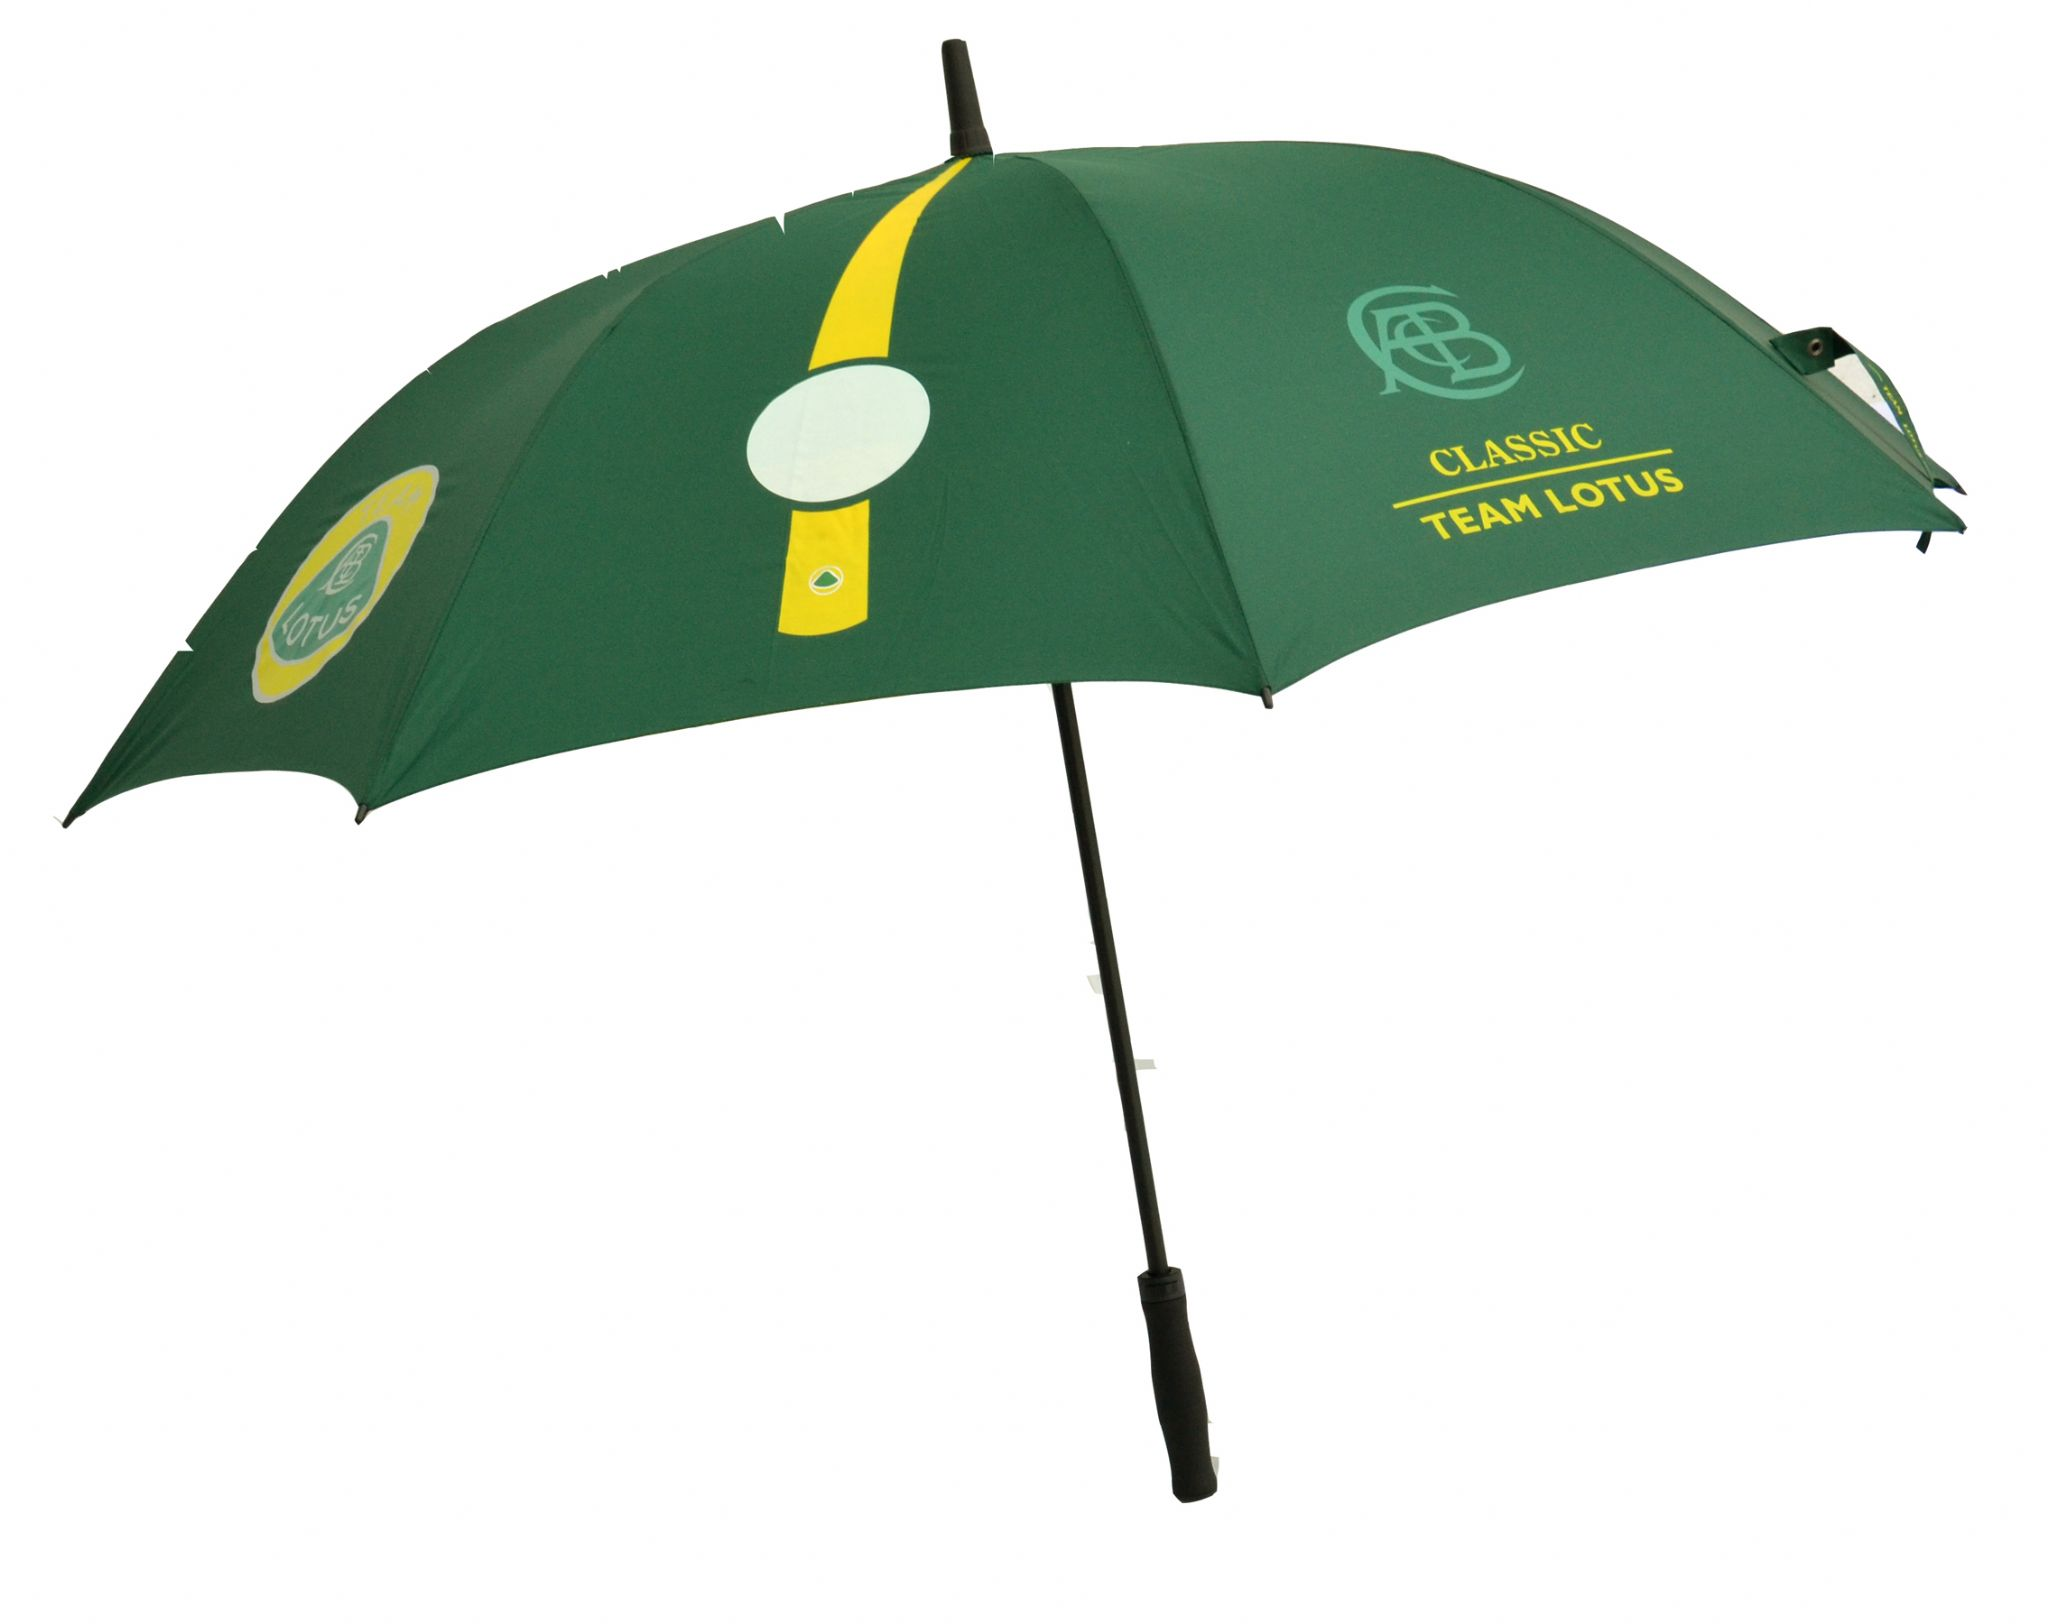 MERCHANDISE LOTUS Classic-team-lotus-umbrella-231-p